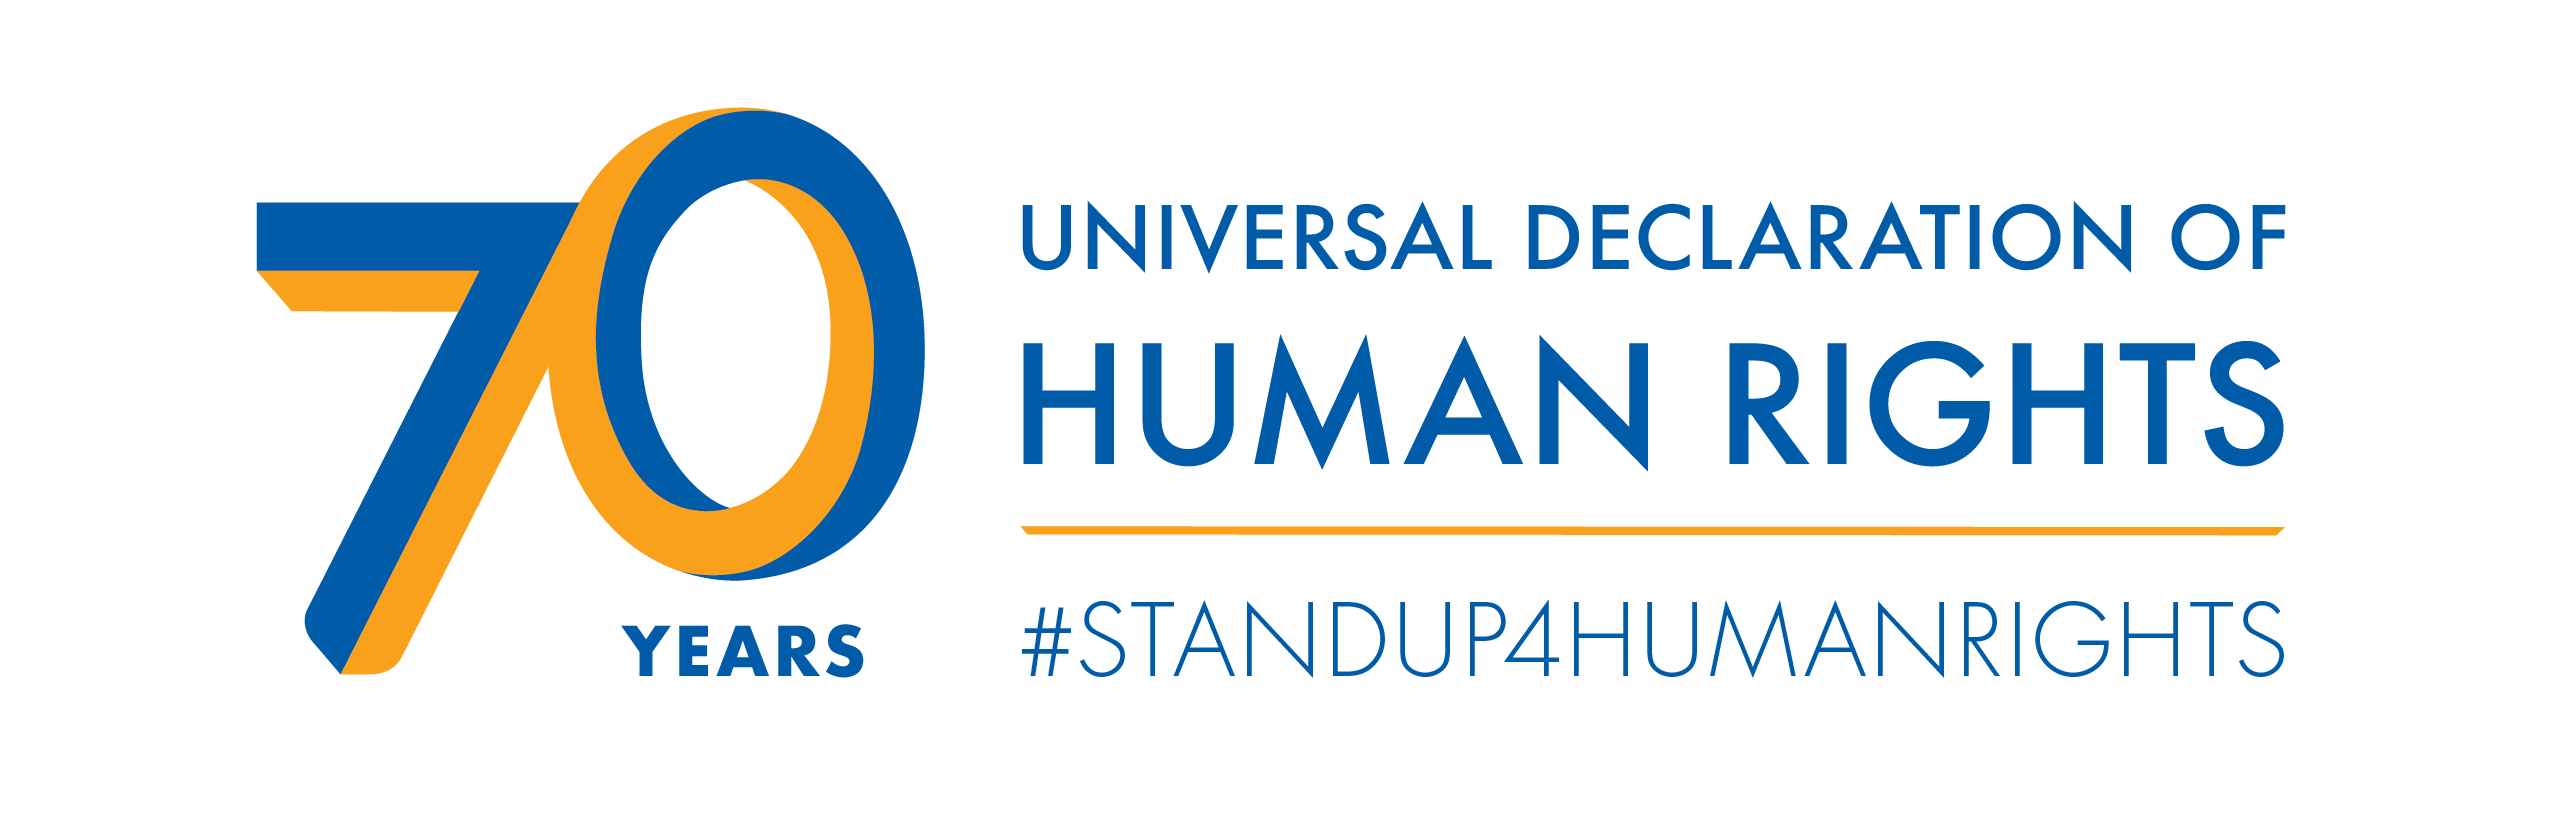 Human rights campaign logo png. Materials stand up for